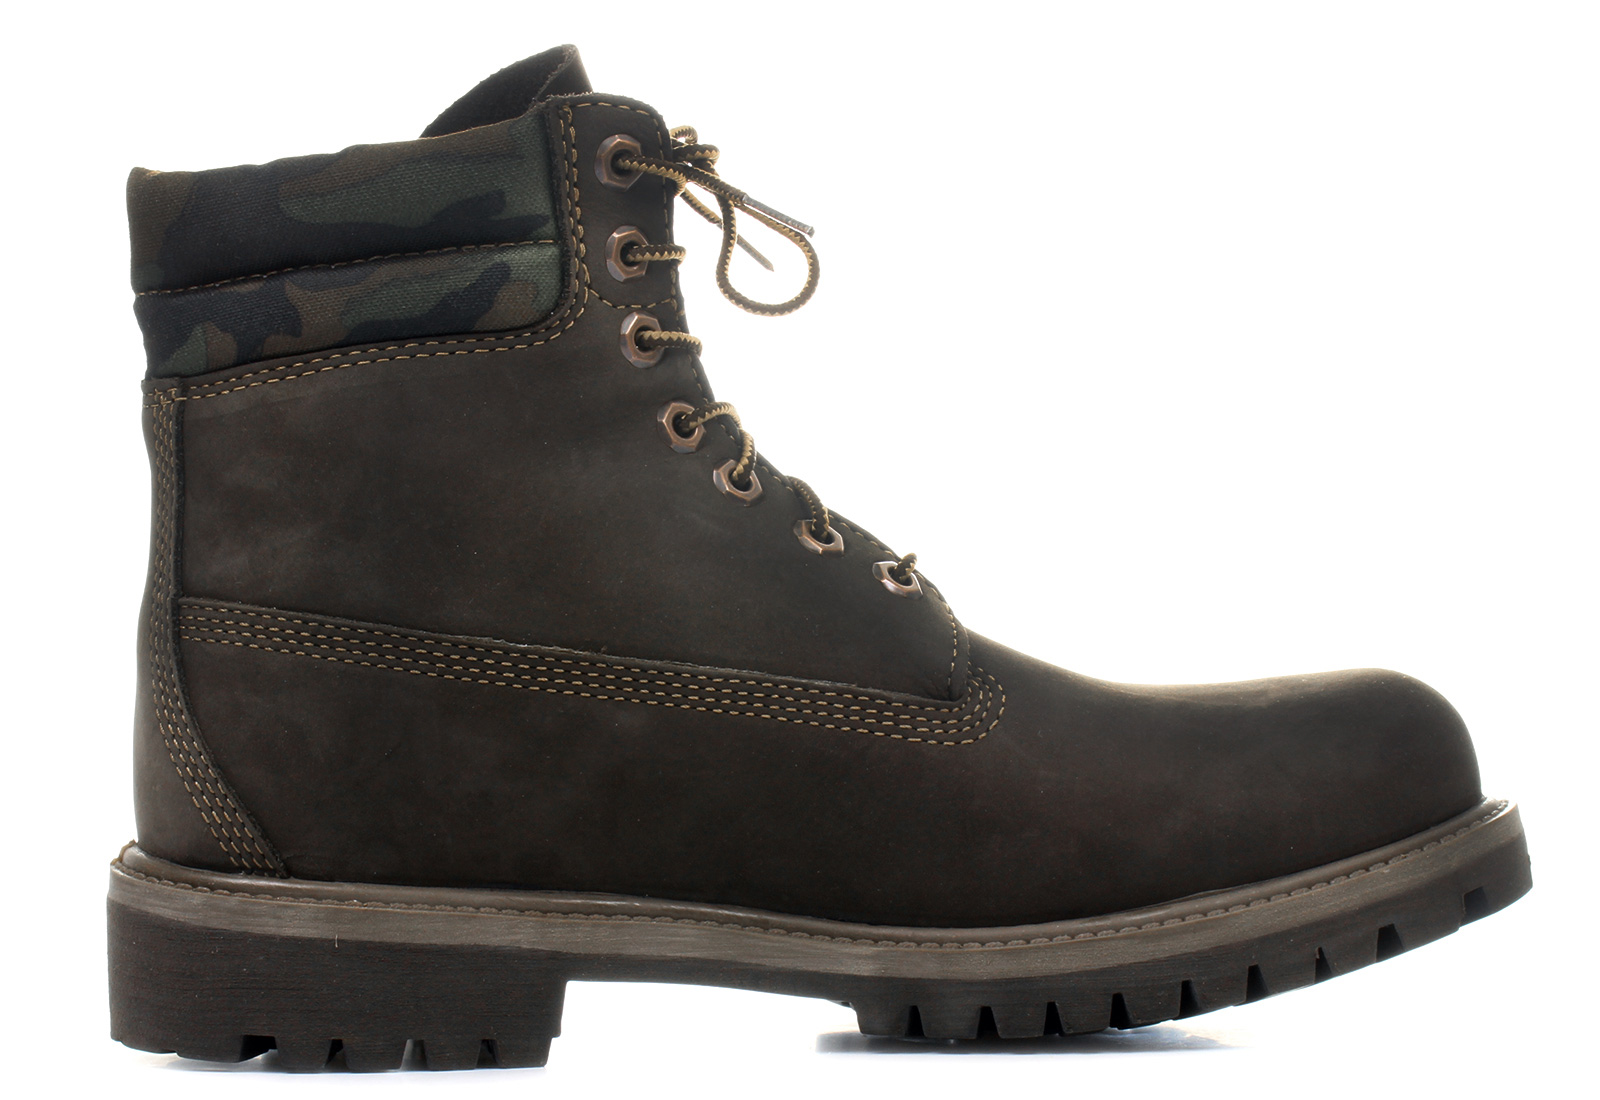 Timberland Boots 6 Inch Double Collar Boot 6610a Dbr